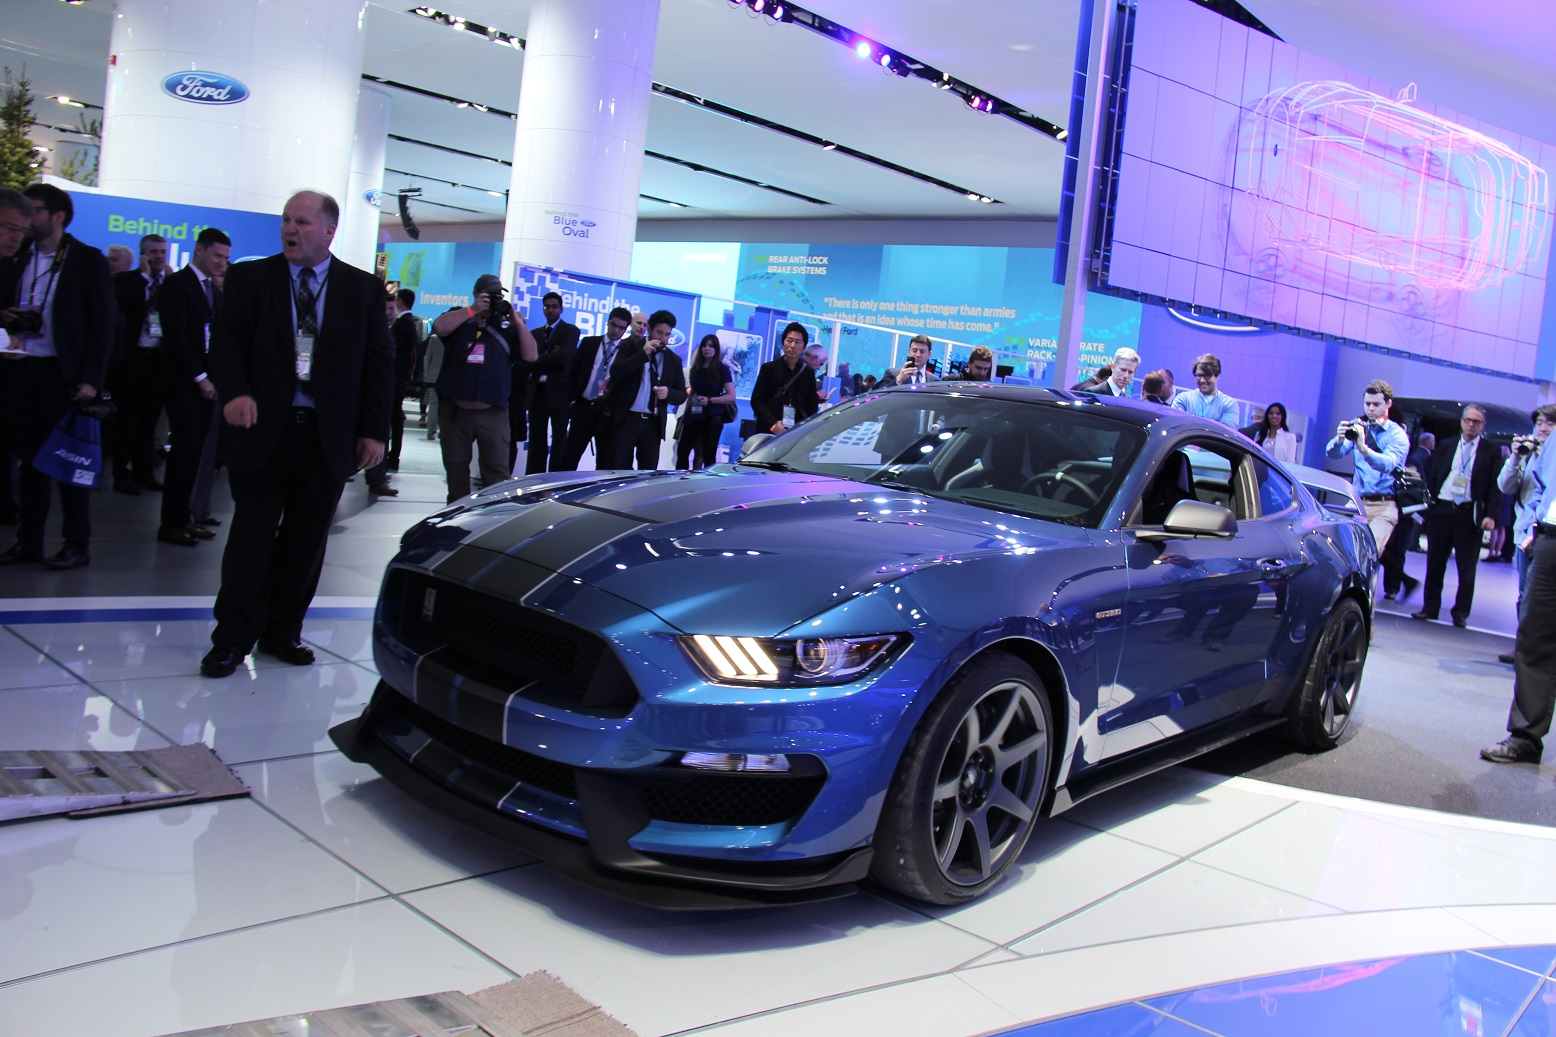 2016 Ford Mustang Shelby Gt350r Preview (Photo 44 of 47)